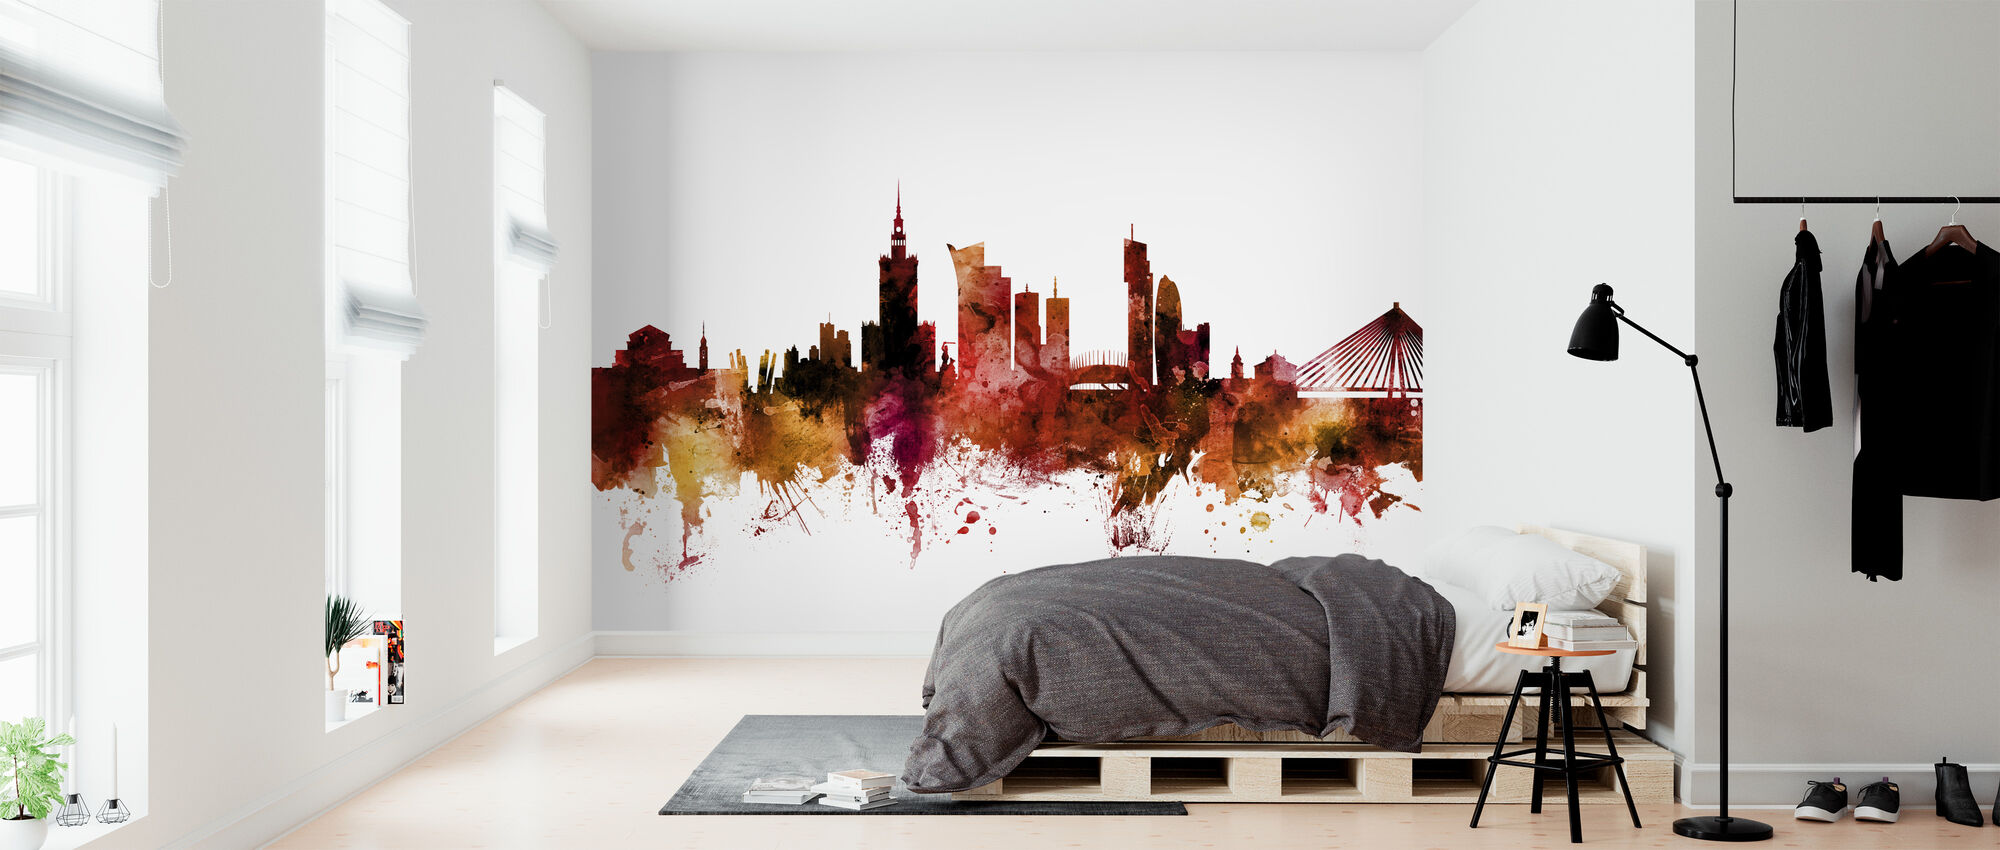 Warsaw Poland Skyline - Wallpaper - Bedroom